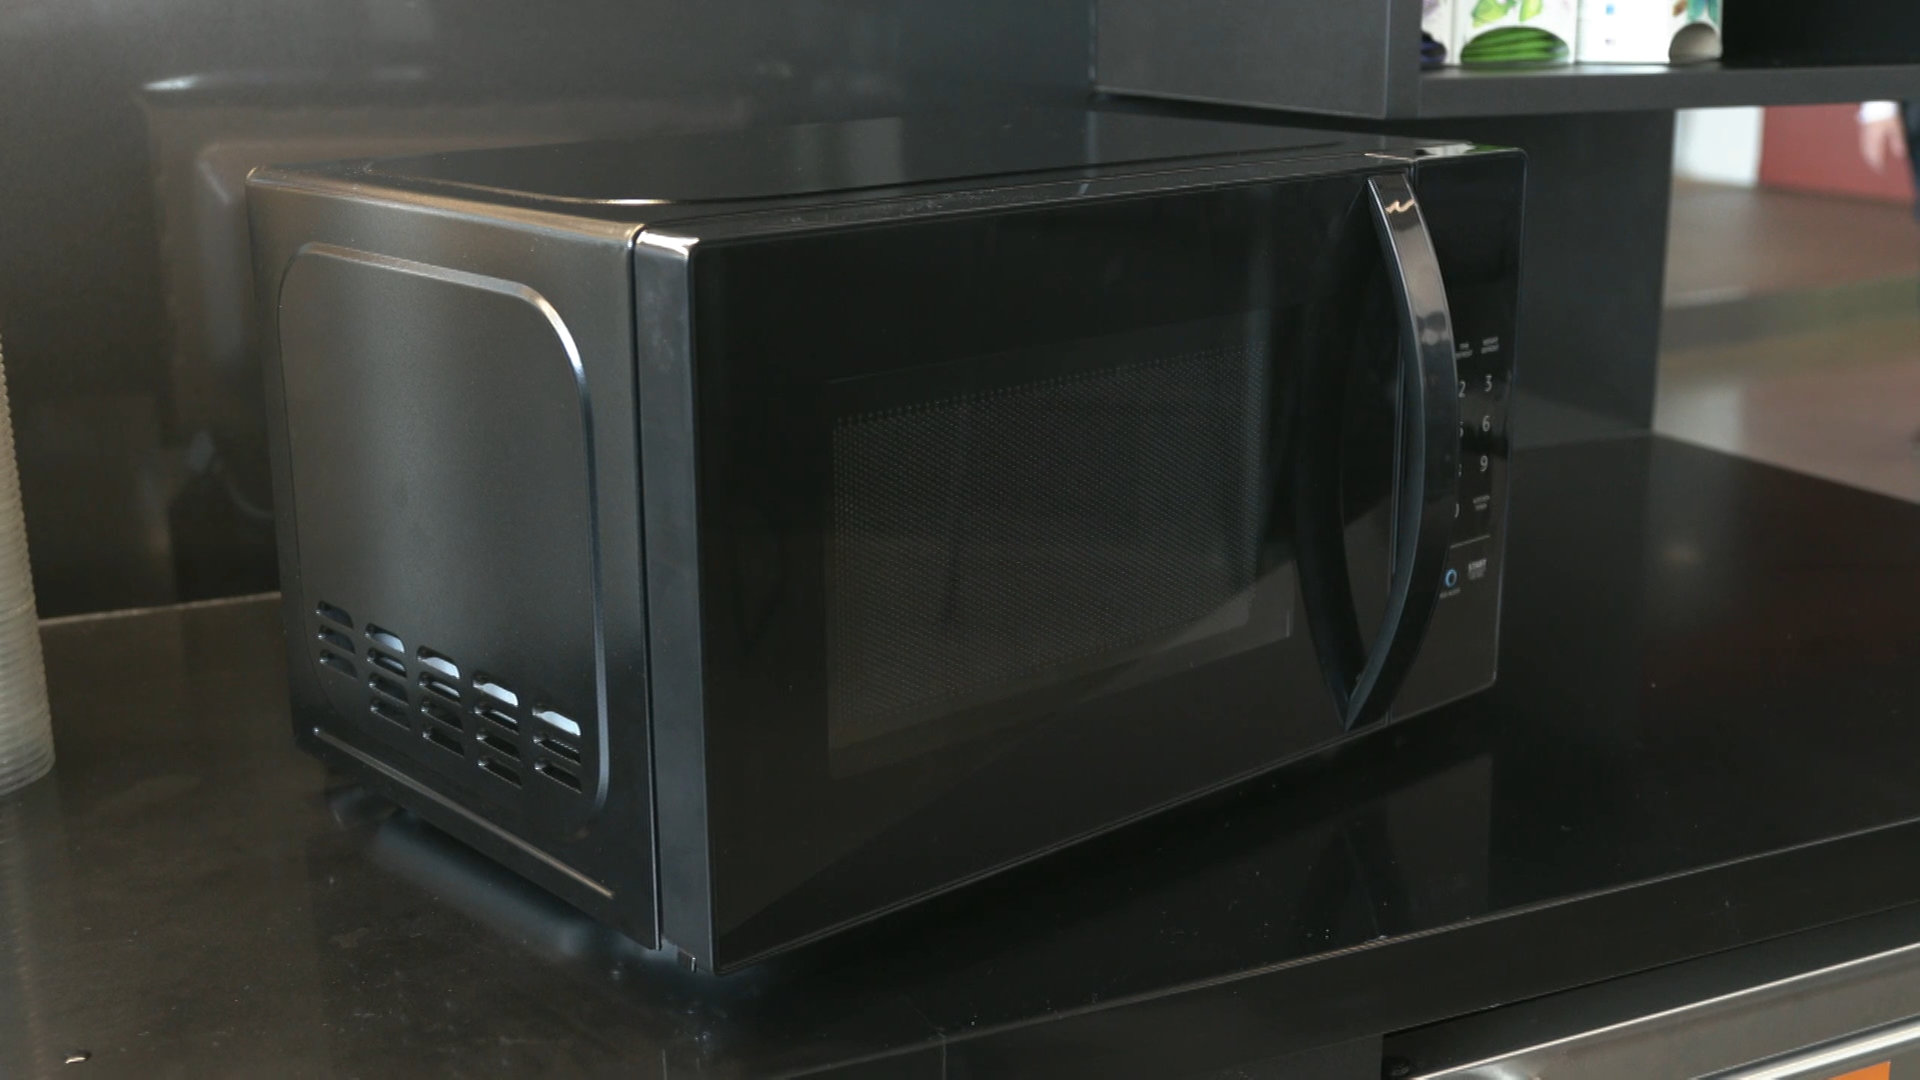 Video: Amazon's new Microwave responds to voice commands